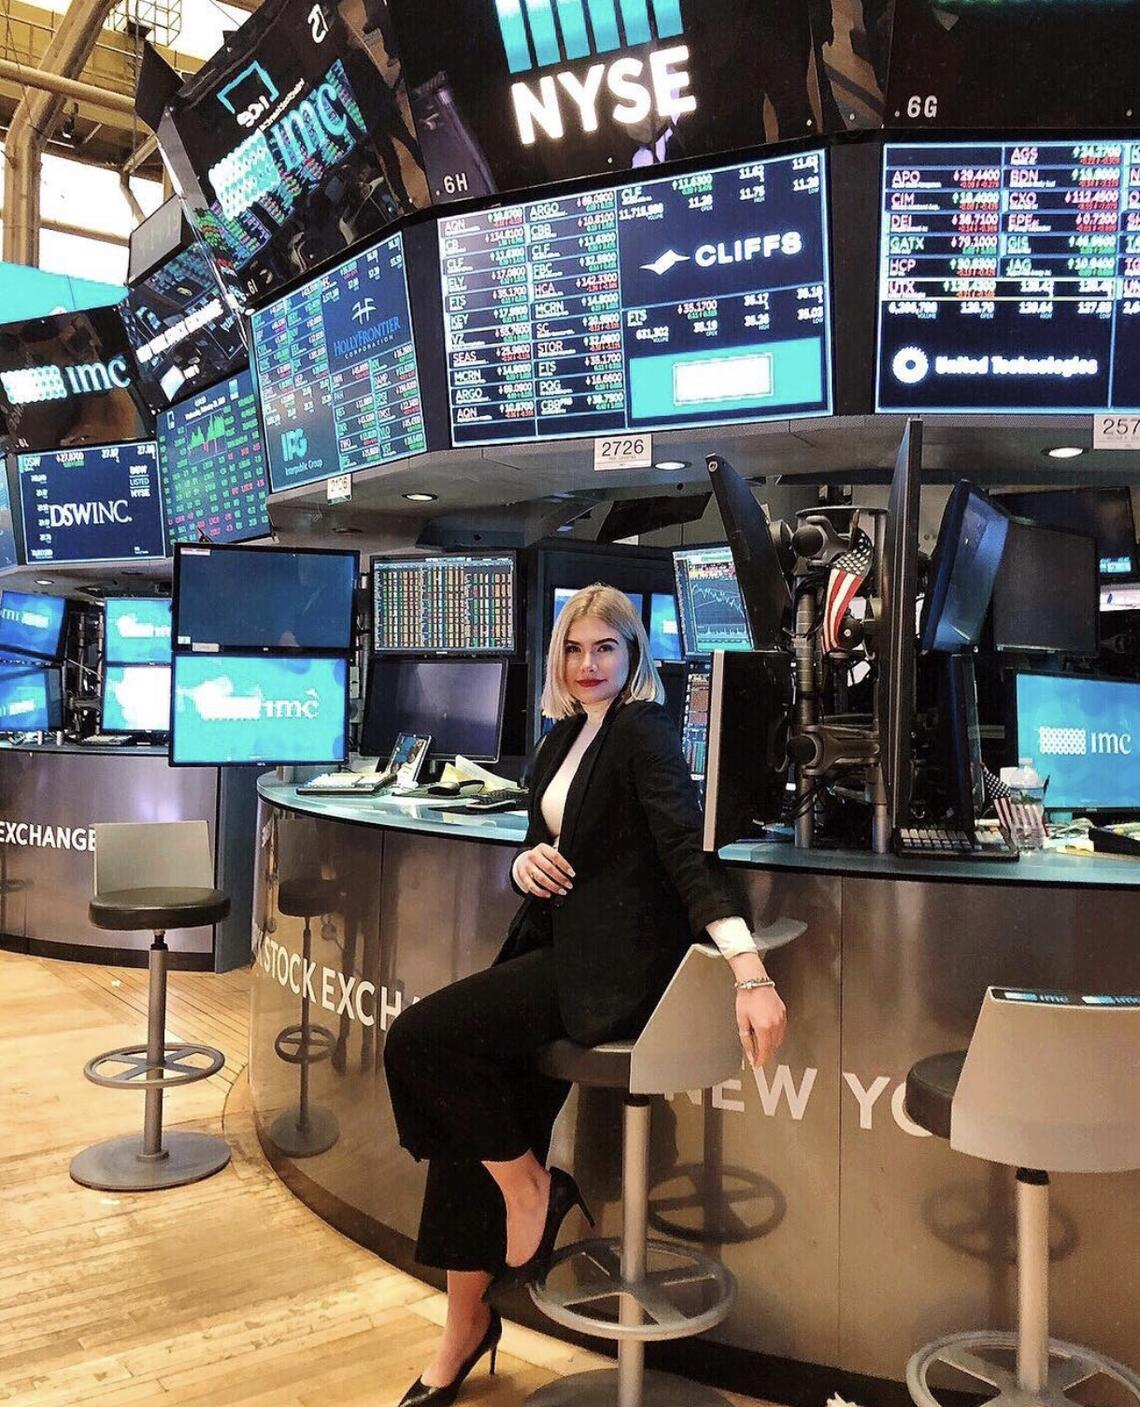 Murray visiting the New York Stock Exchange on Days of Discovery trip.